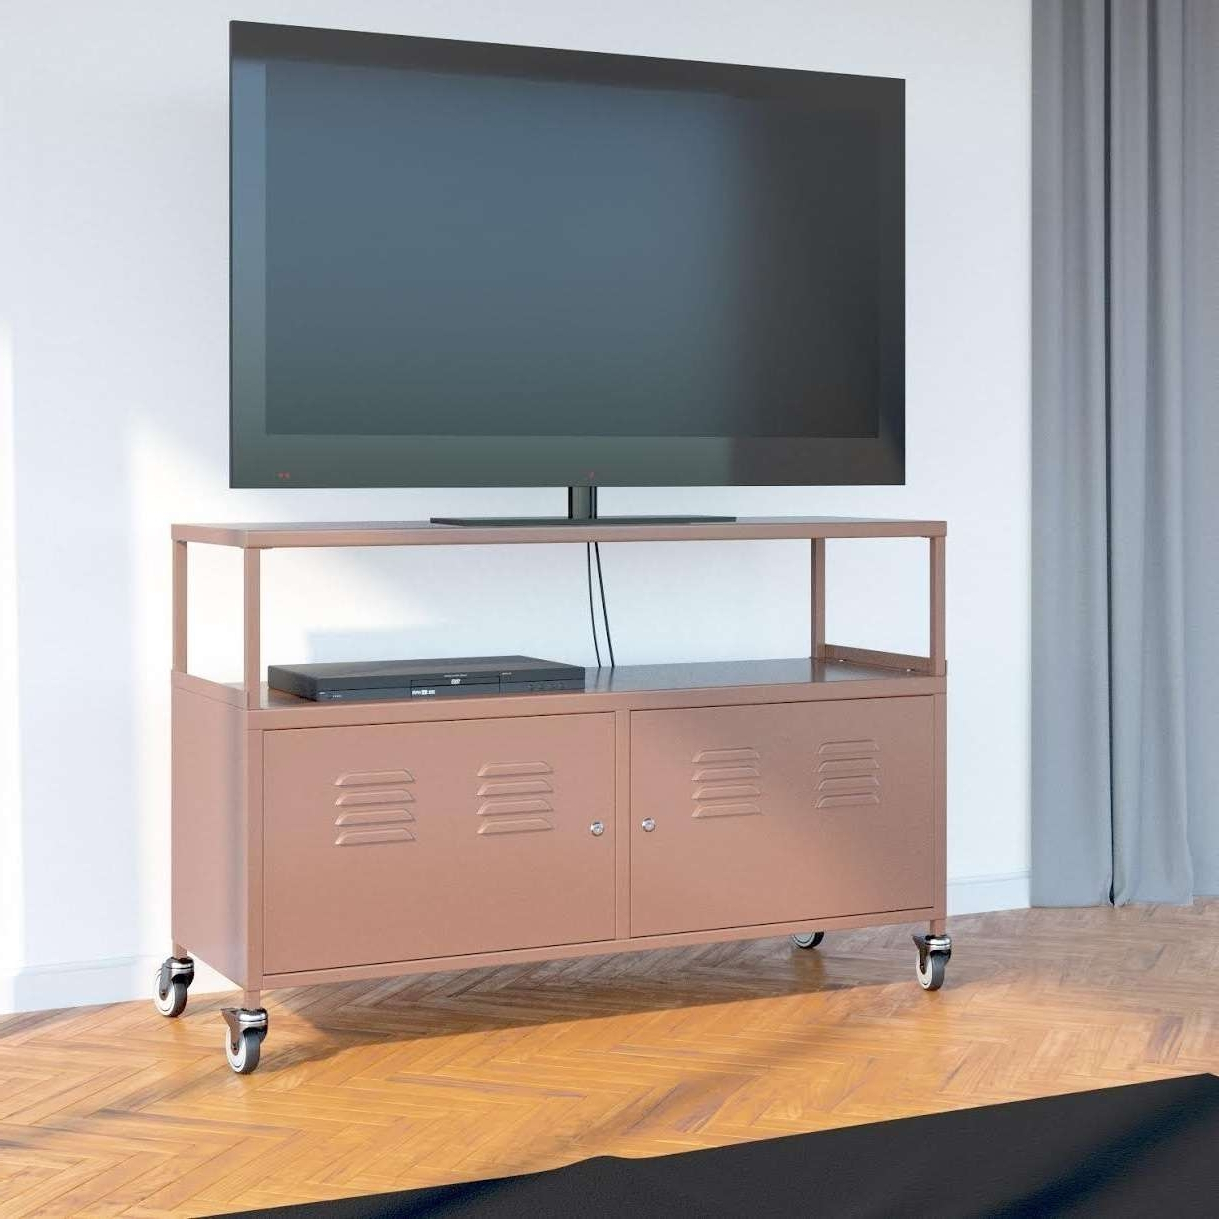 Fashionable Lockable Tv Stands In Lockable Tv Stands Popular 1219×1219 Attachment (Gallery 2 of 20)